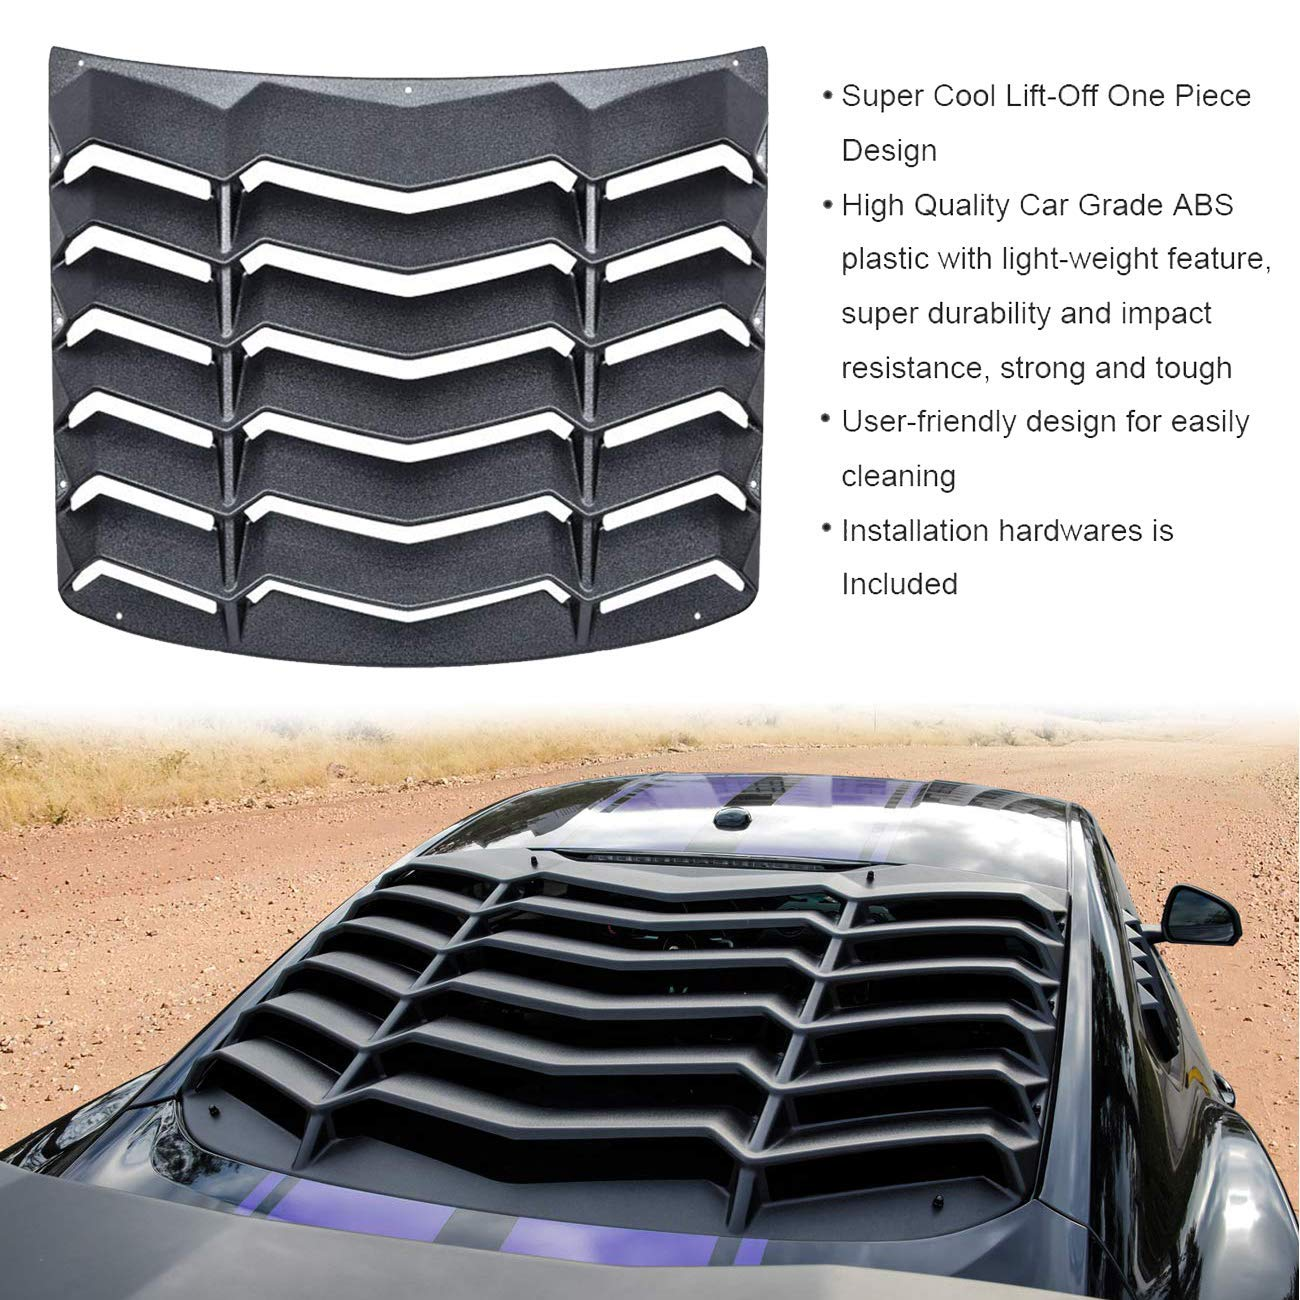 61.8inches Length GT Style Trunk Rear Spoiler Wing Tail Lid for Ford Mustang 2015-2018,Matte Black ,RearSpoilerWing